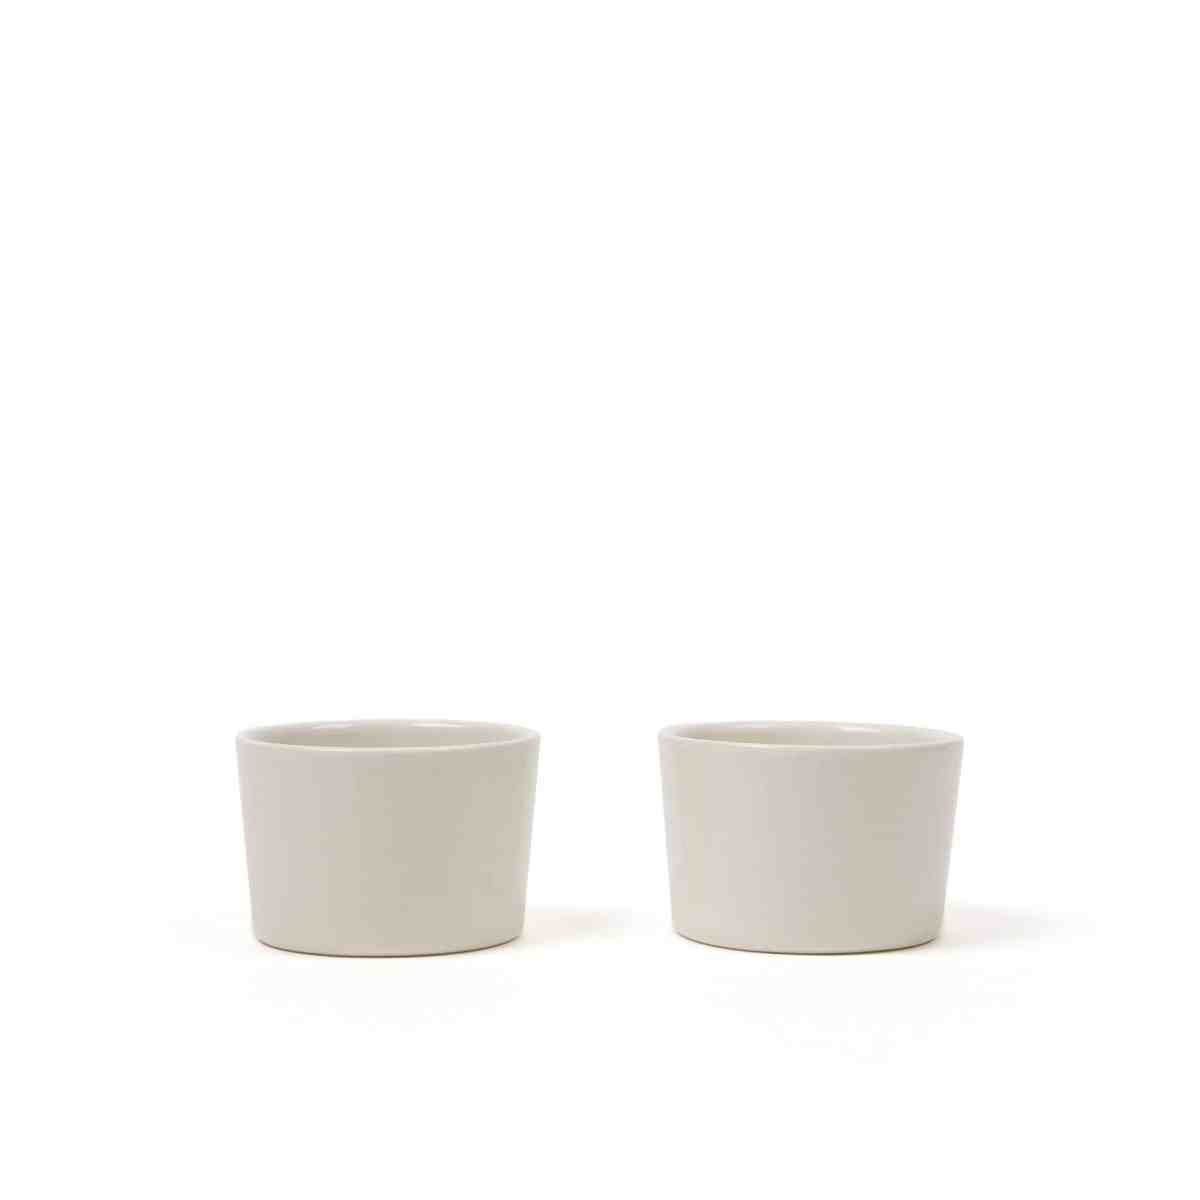 Another-country-pottery-cup-natural-002